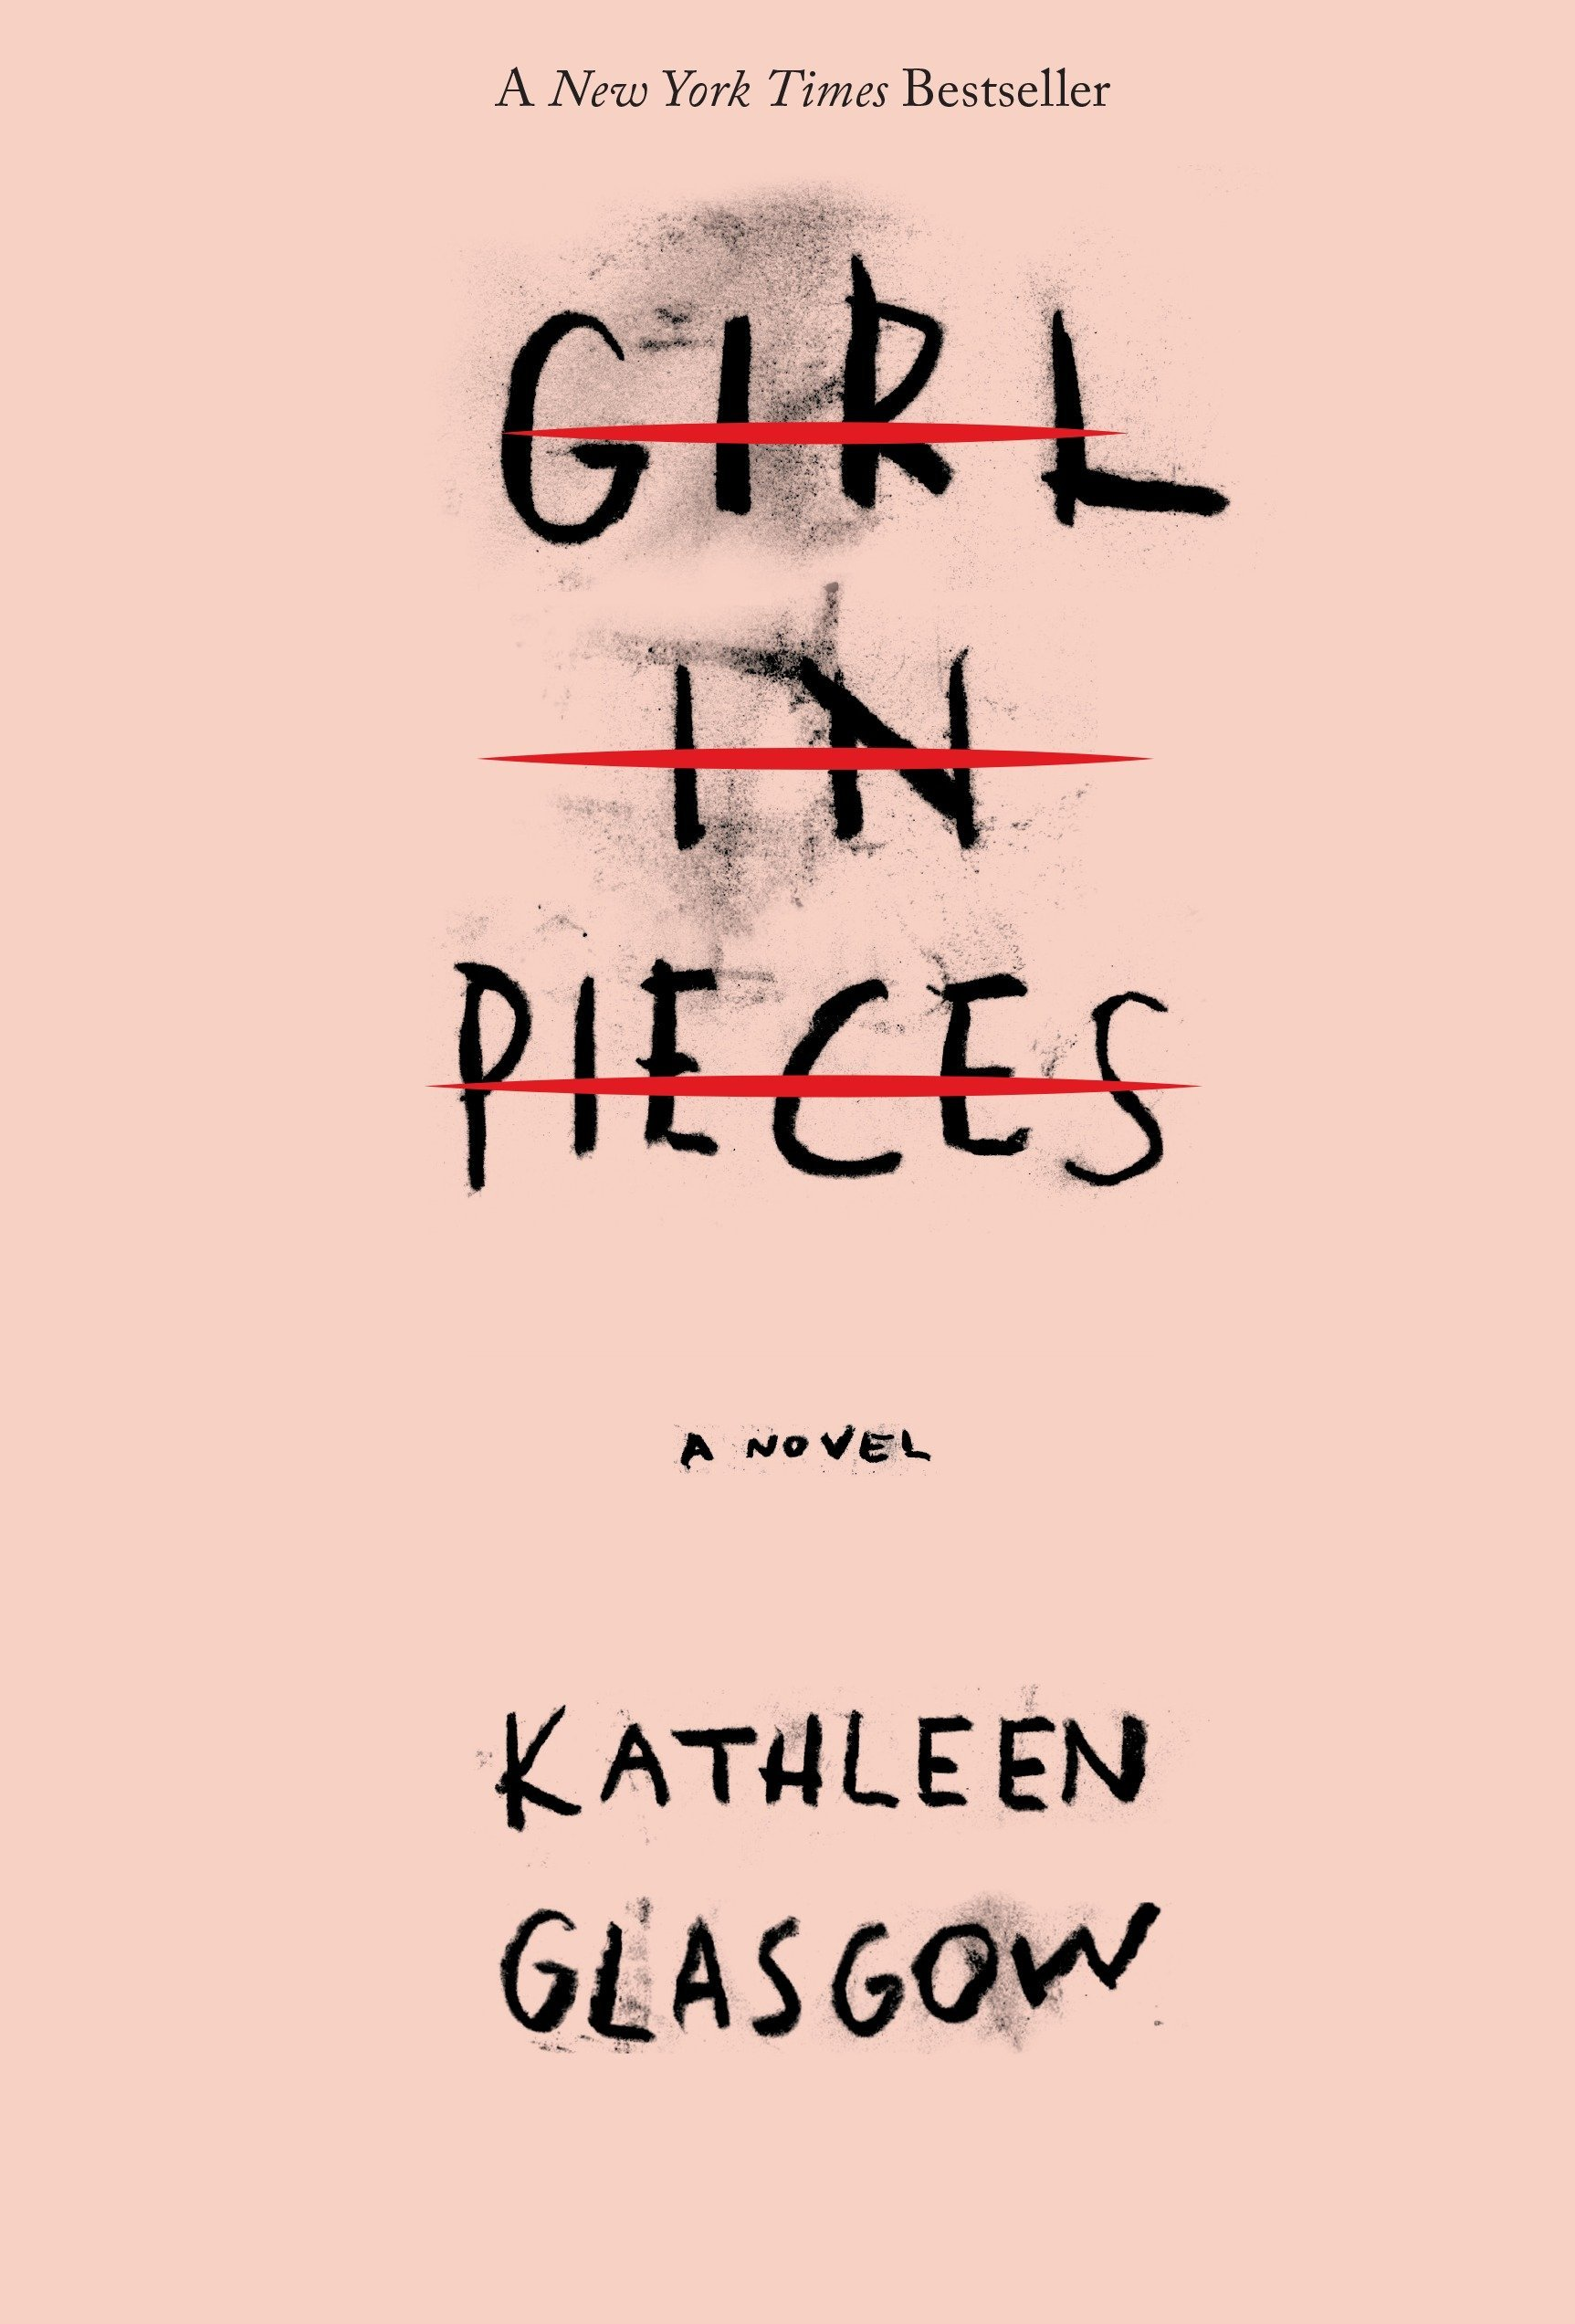 Amazon.com: Girl in Pieces (9781101934715): Glasgow, Kathleen: Books